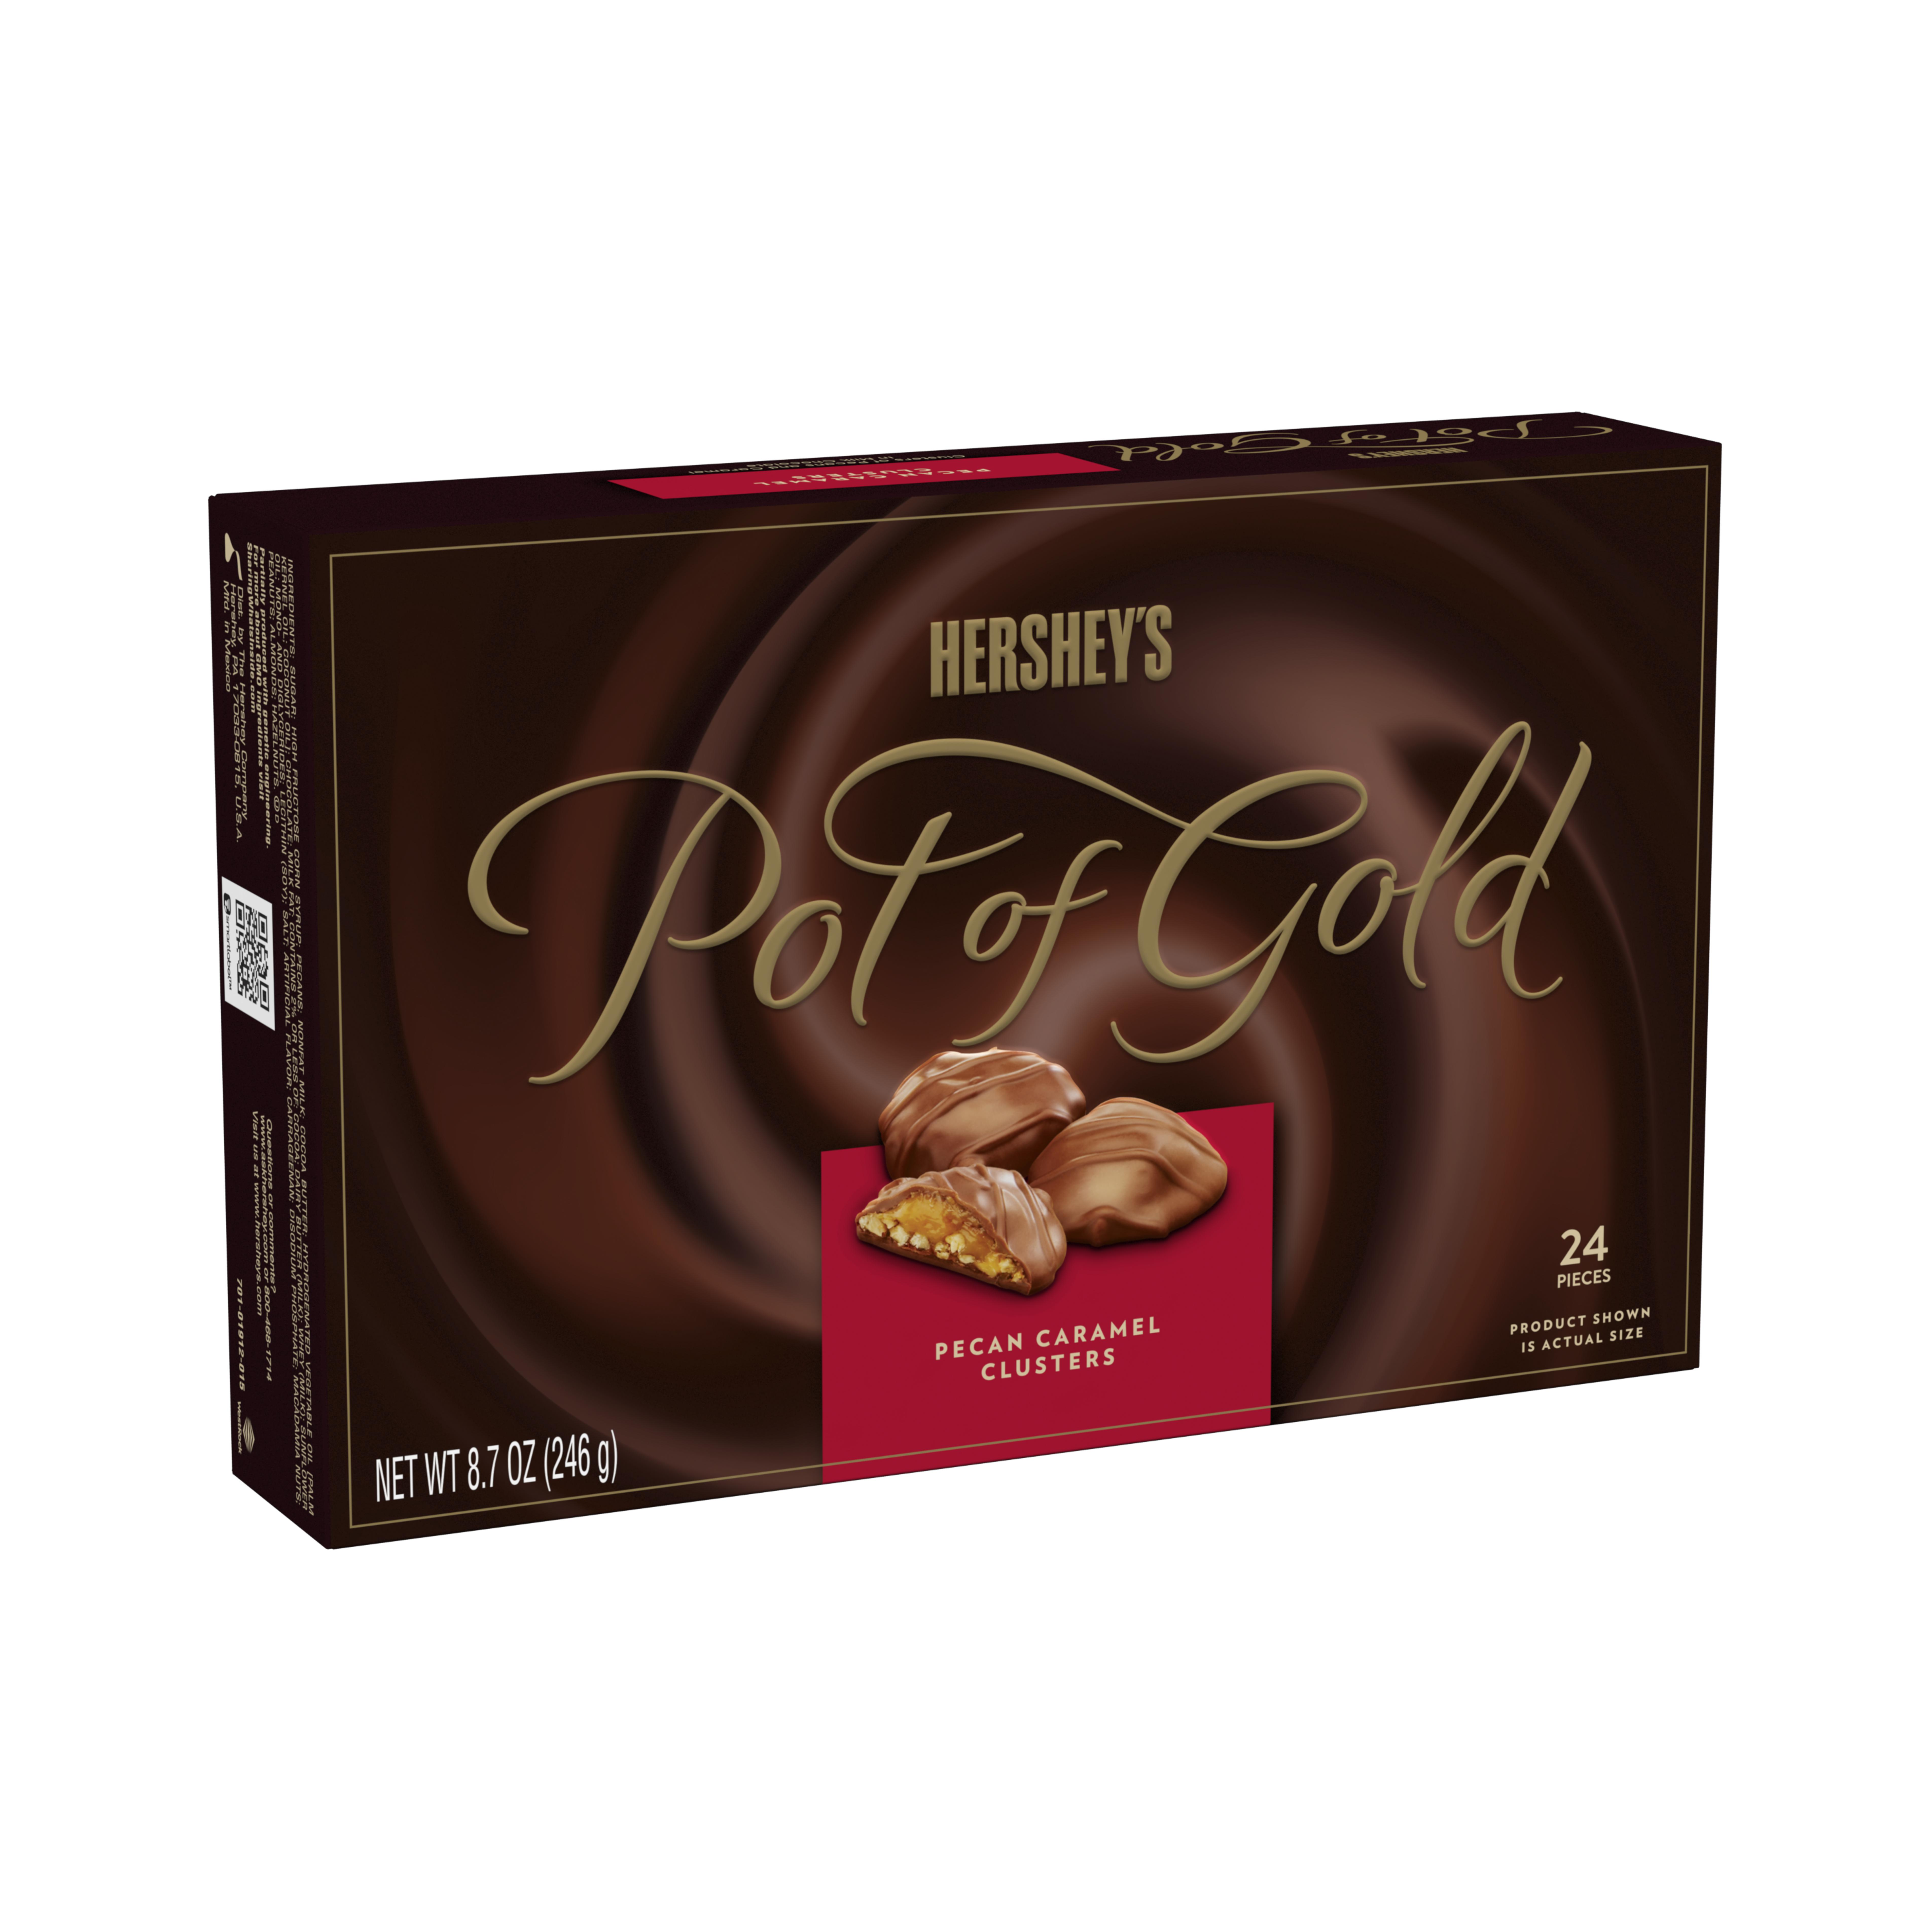 Hershey's Pot of Gold, Pecan Caramel Clusters Candy, 8.7 Oz - Online Only